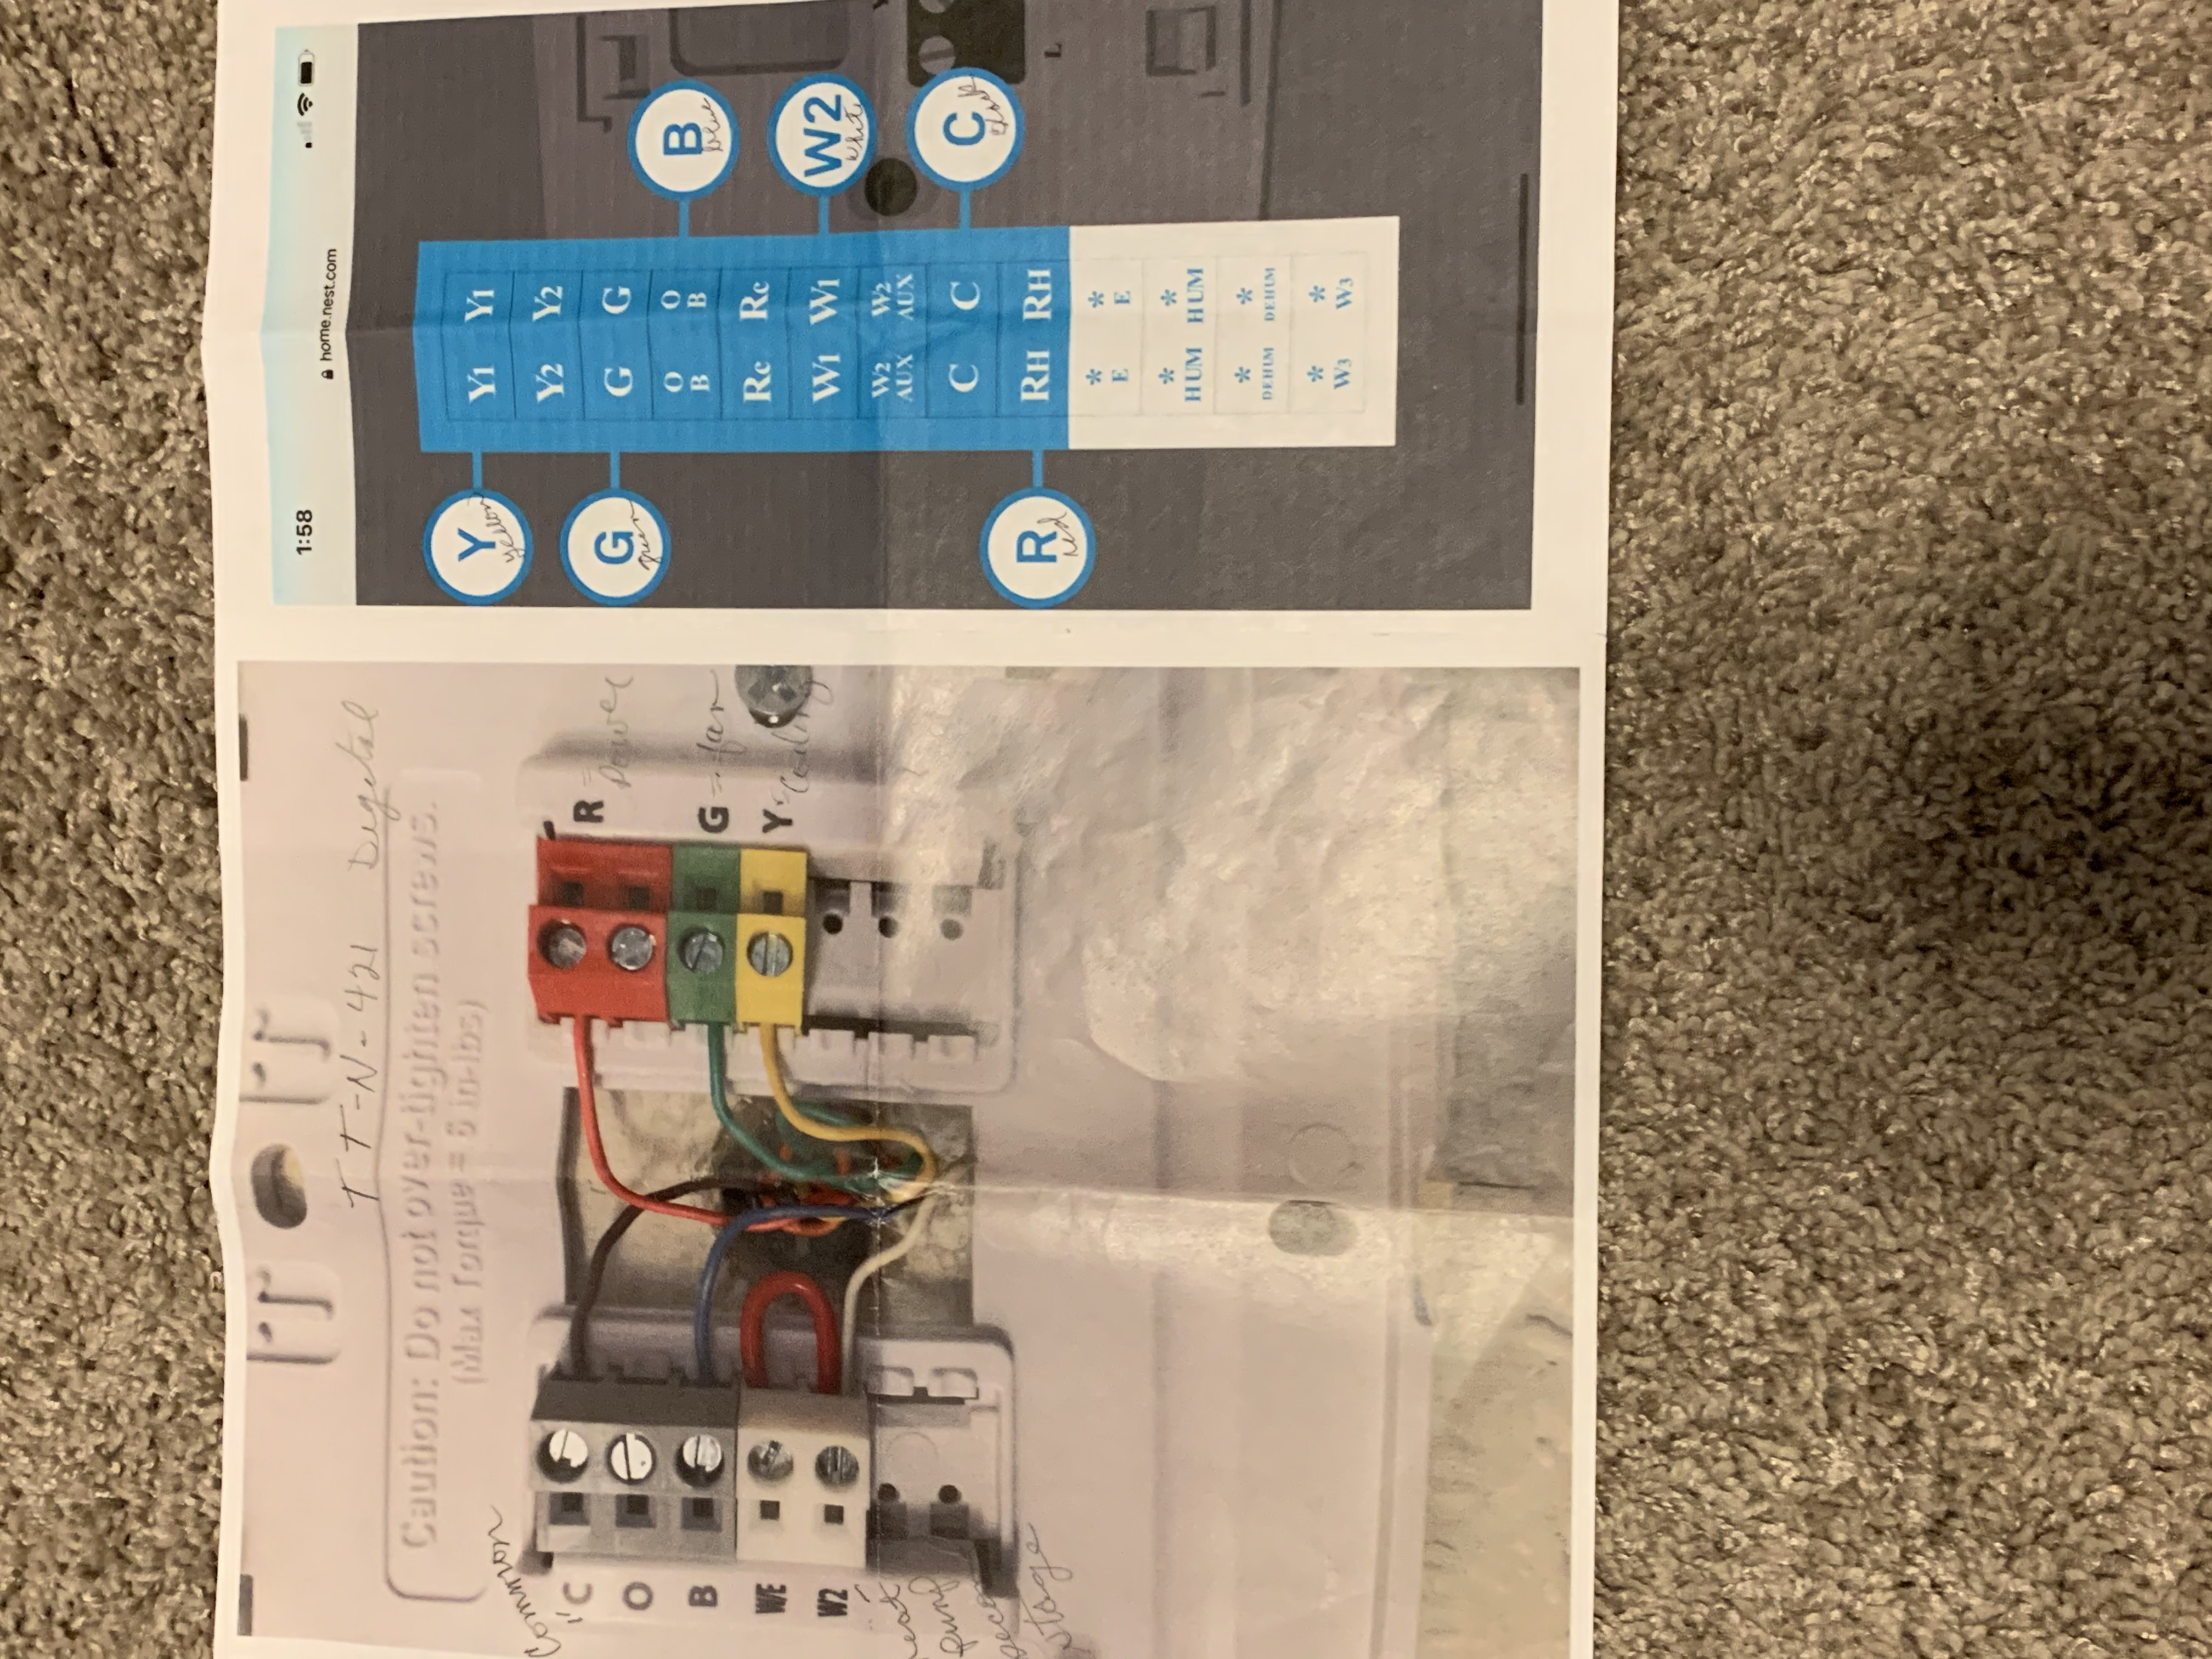 Nest Thermostat Wiring Diagram Air Conditioner from storage.googleapis.com